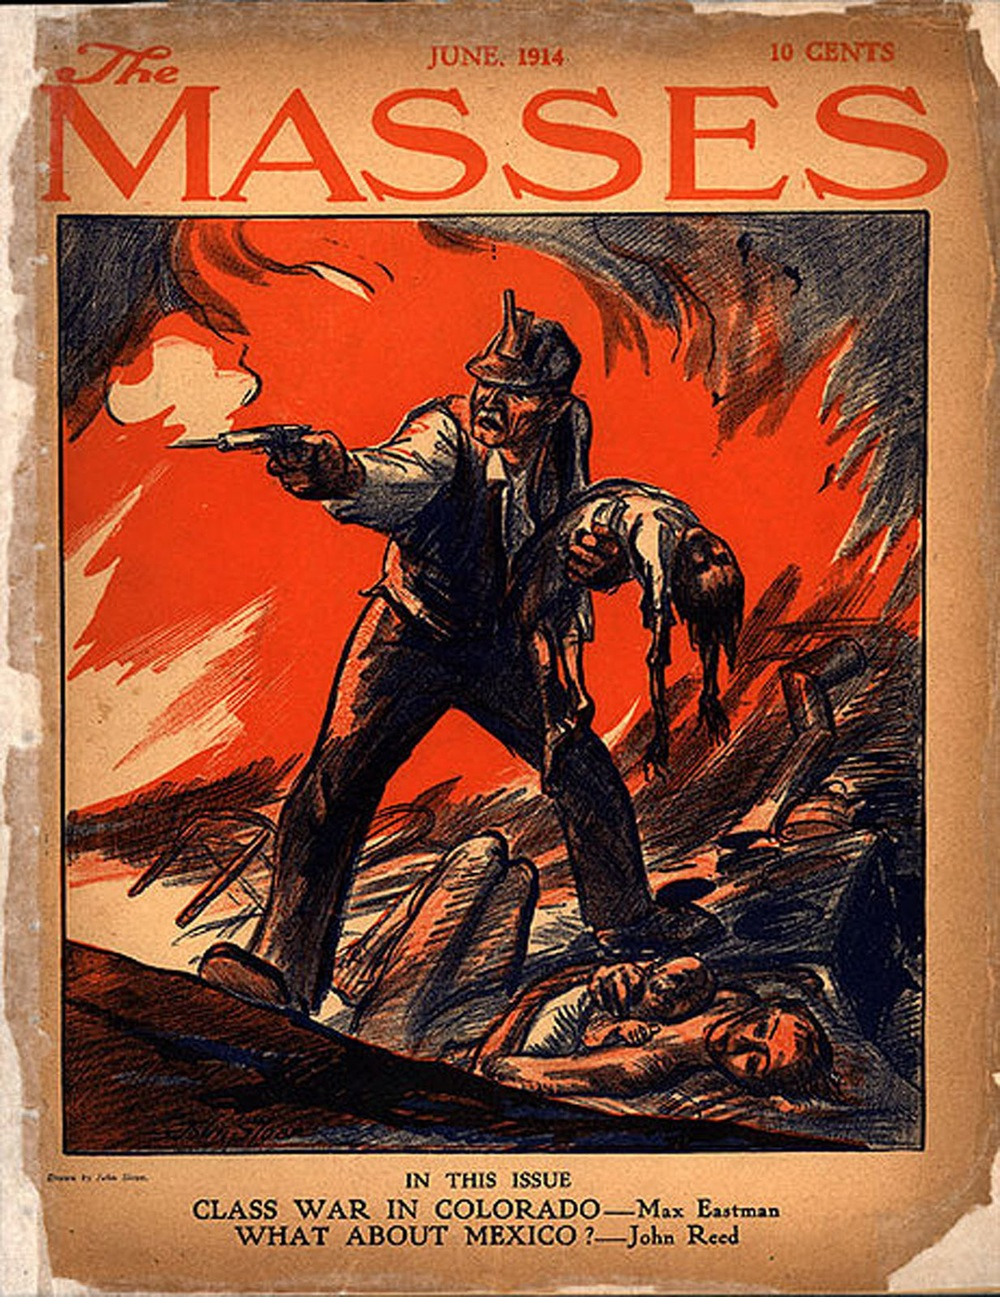 John Sloan, Ludlow Massacre, magazine cover forThe Masses, June 1914